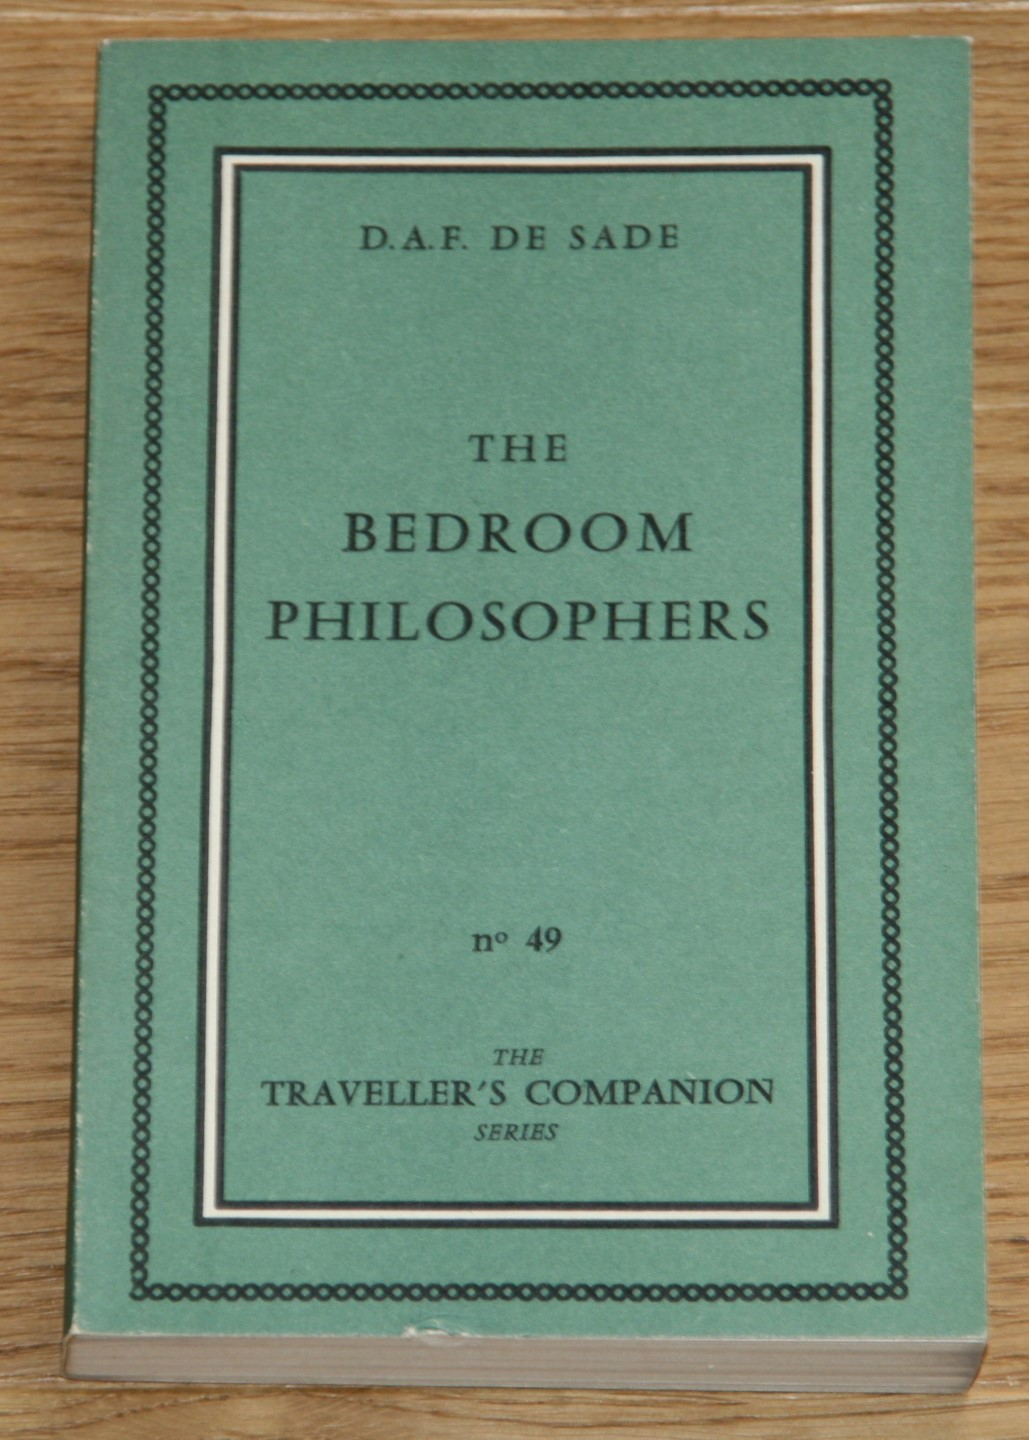 The bedroom philosophers. Being an English rendering of La Philosophie dans le Boudoir done by Pieralessandro Casavini. [The traveller